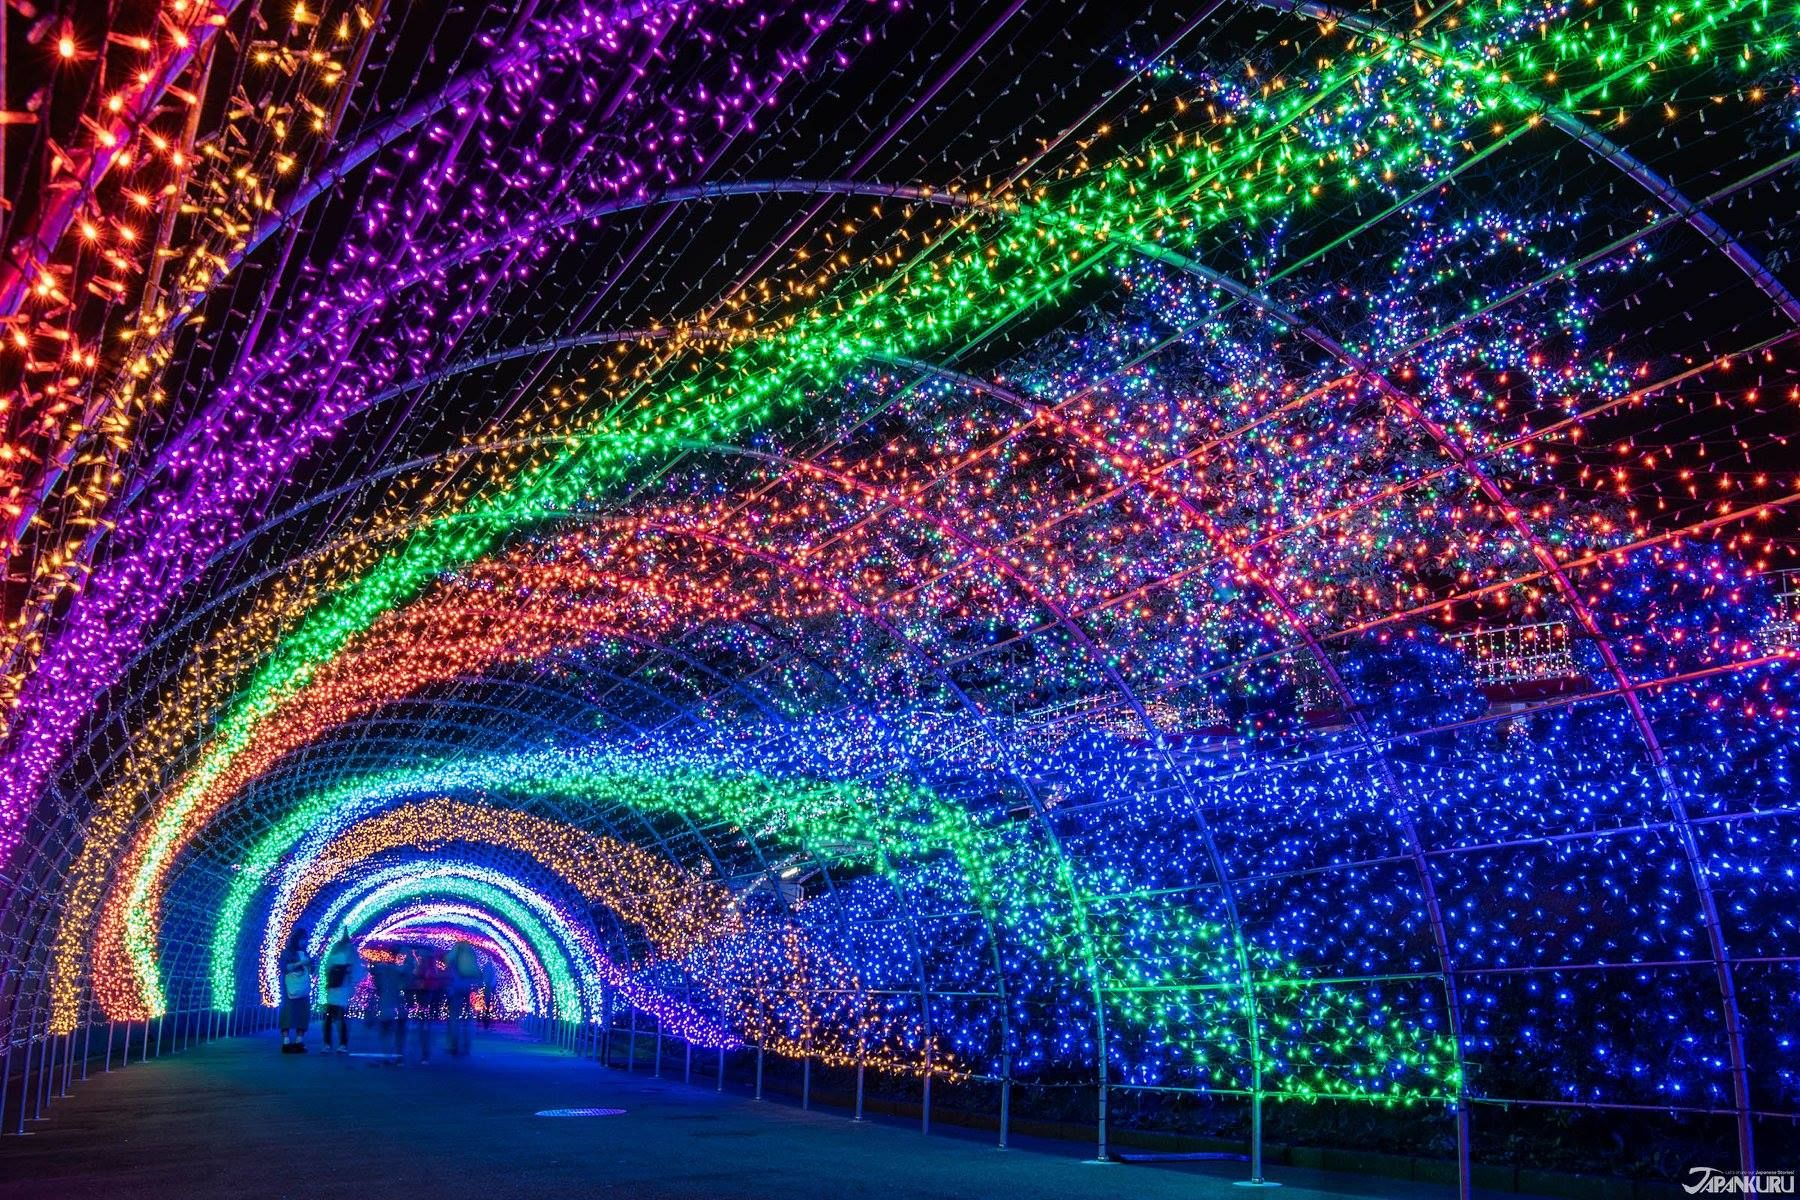 At The Yomiuriland S Jewellumination Everywhere In The Park Is Illuminated With 6 000 000 Colorful Light Making It L Winter In Japan Tokyo Winter Winter Light